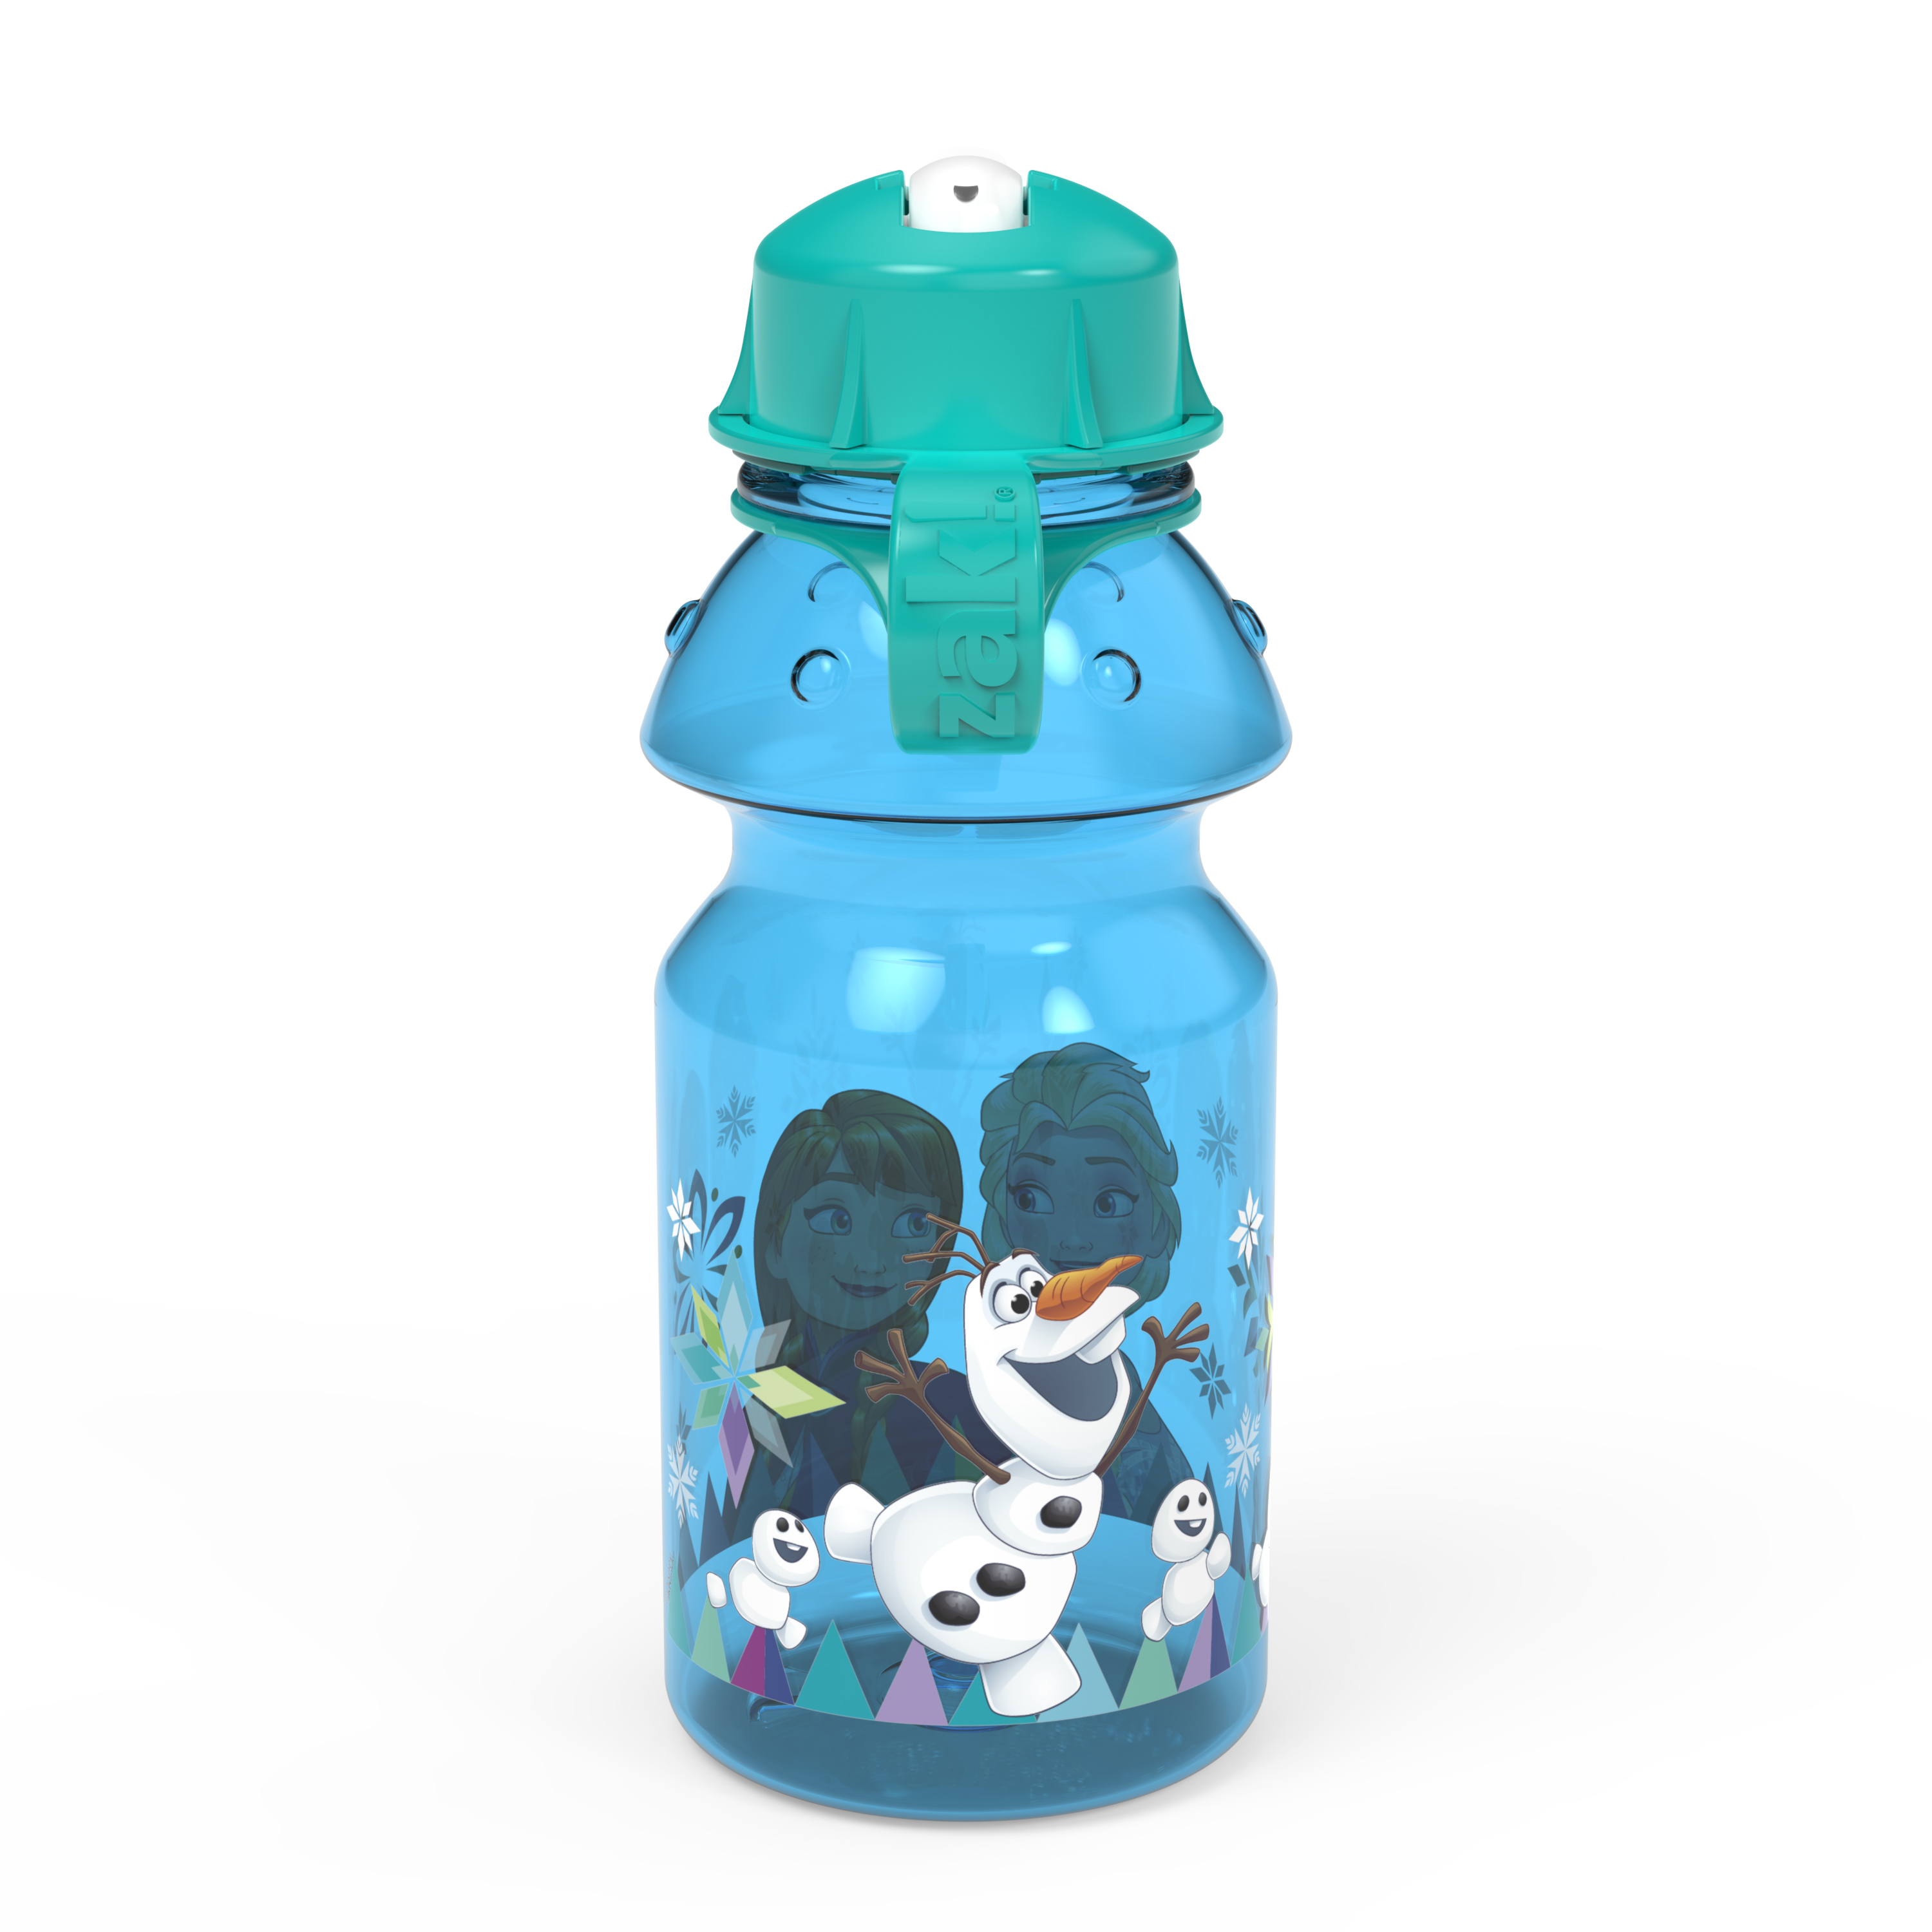 Disney Frozen 14 ounce Water Bottle, Anna, Elsa and Olaf slideshow image 2